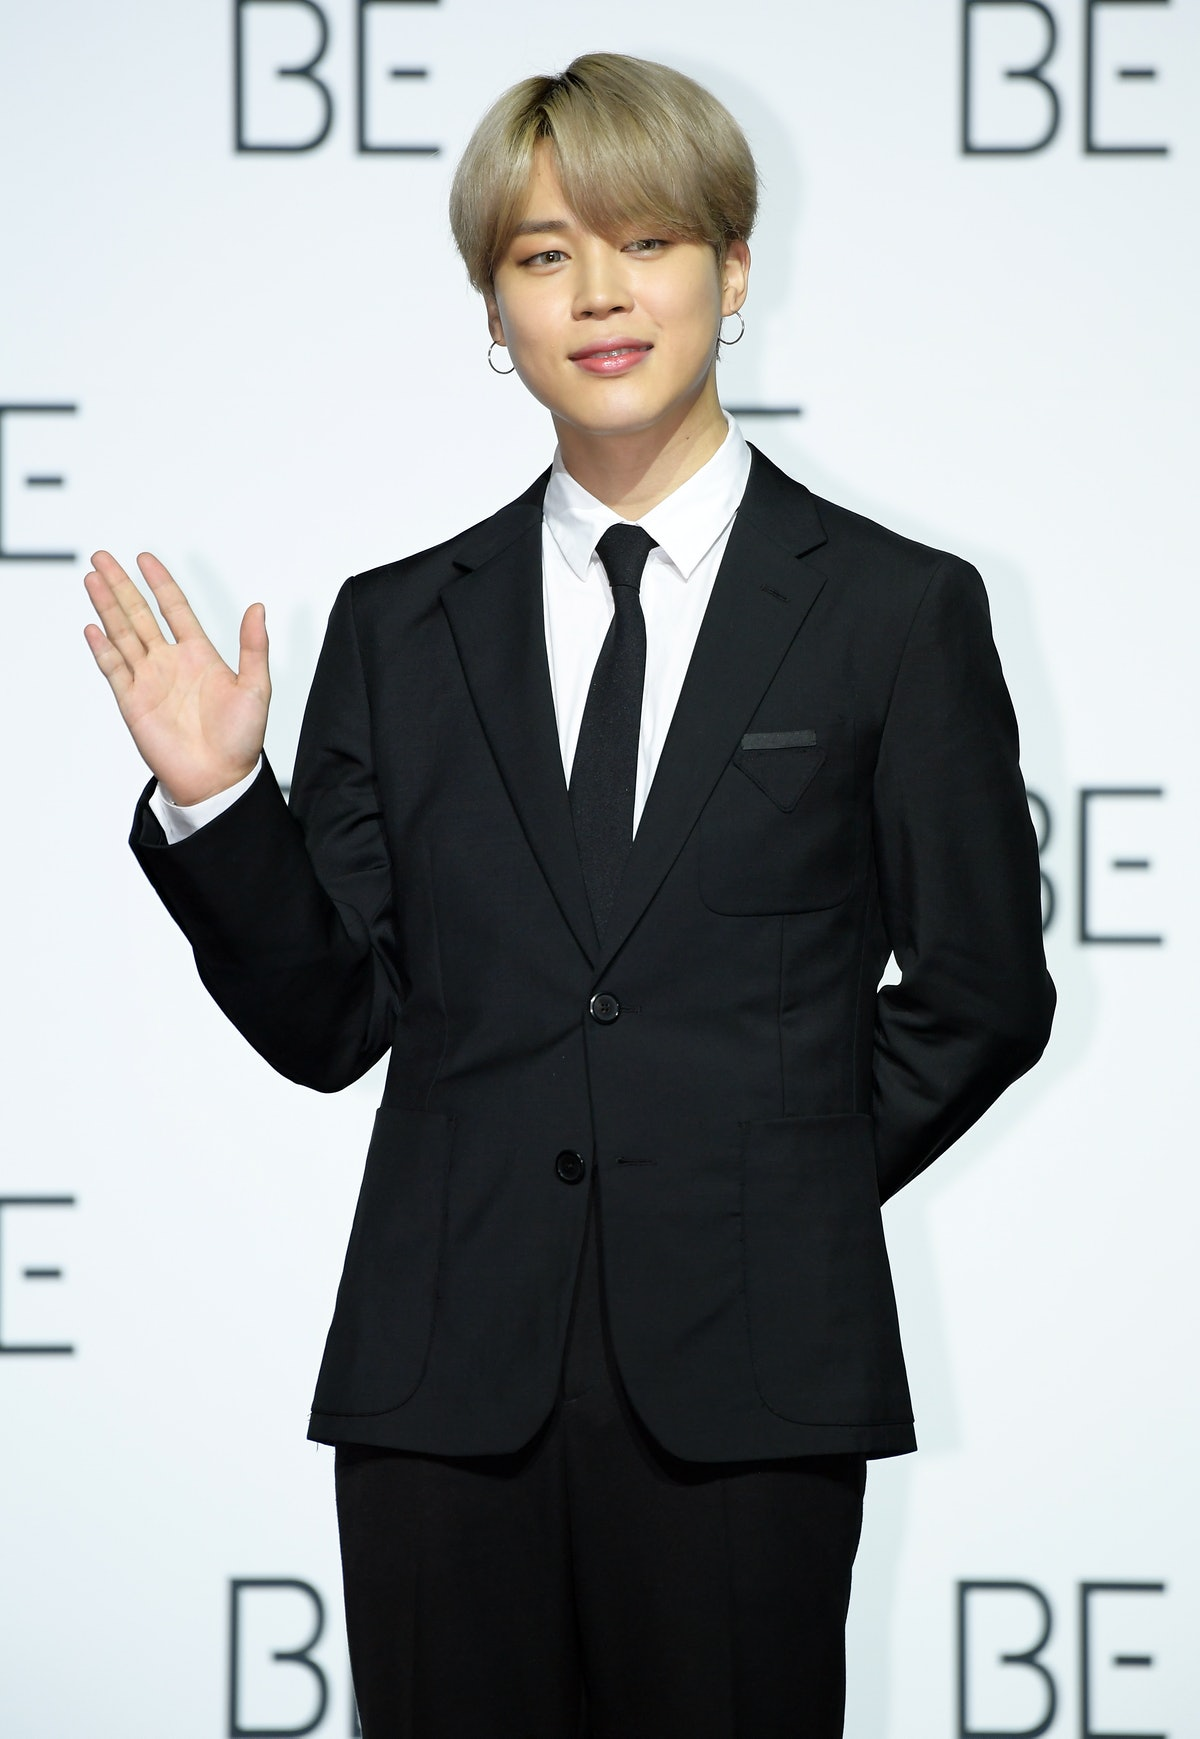 SEOUL, SOUTH KOREA - NOVEMBER 20: Jimin of BTS during BTS's New Album 'BE (Deluxe Edition)' Release Press Conference at Dongdaemun Design Plaza on November 20, 2020 in Seoul, South Korea. (Photo by The Chosunilbo JNS/Imazins via Getty Images)